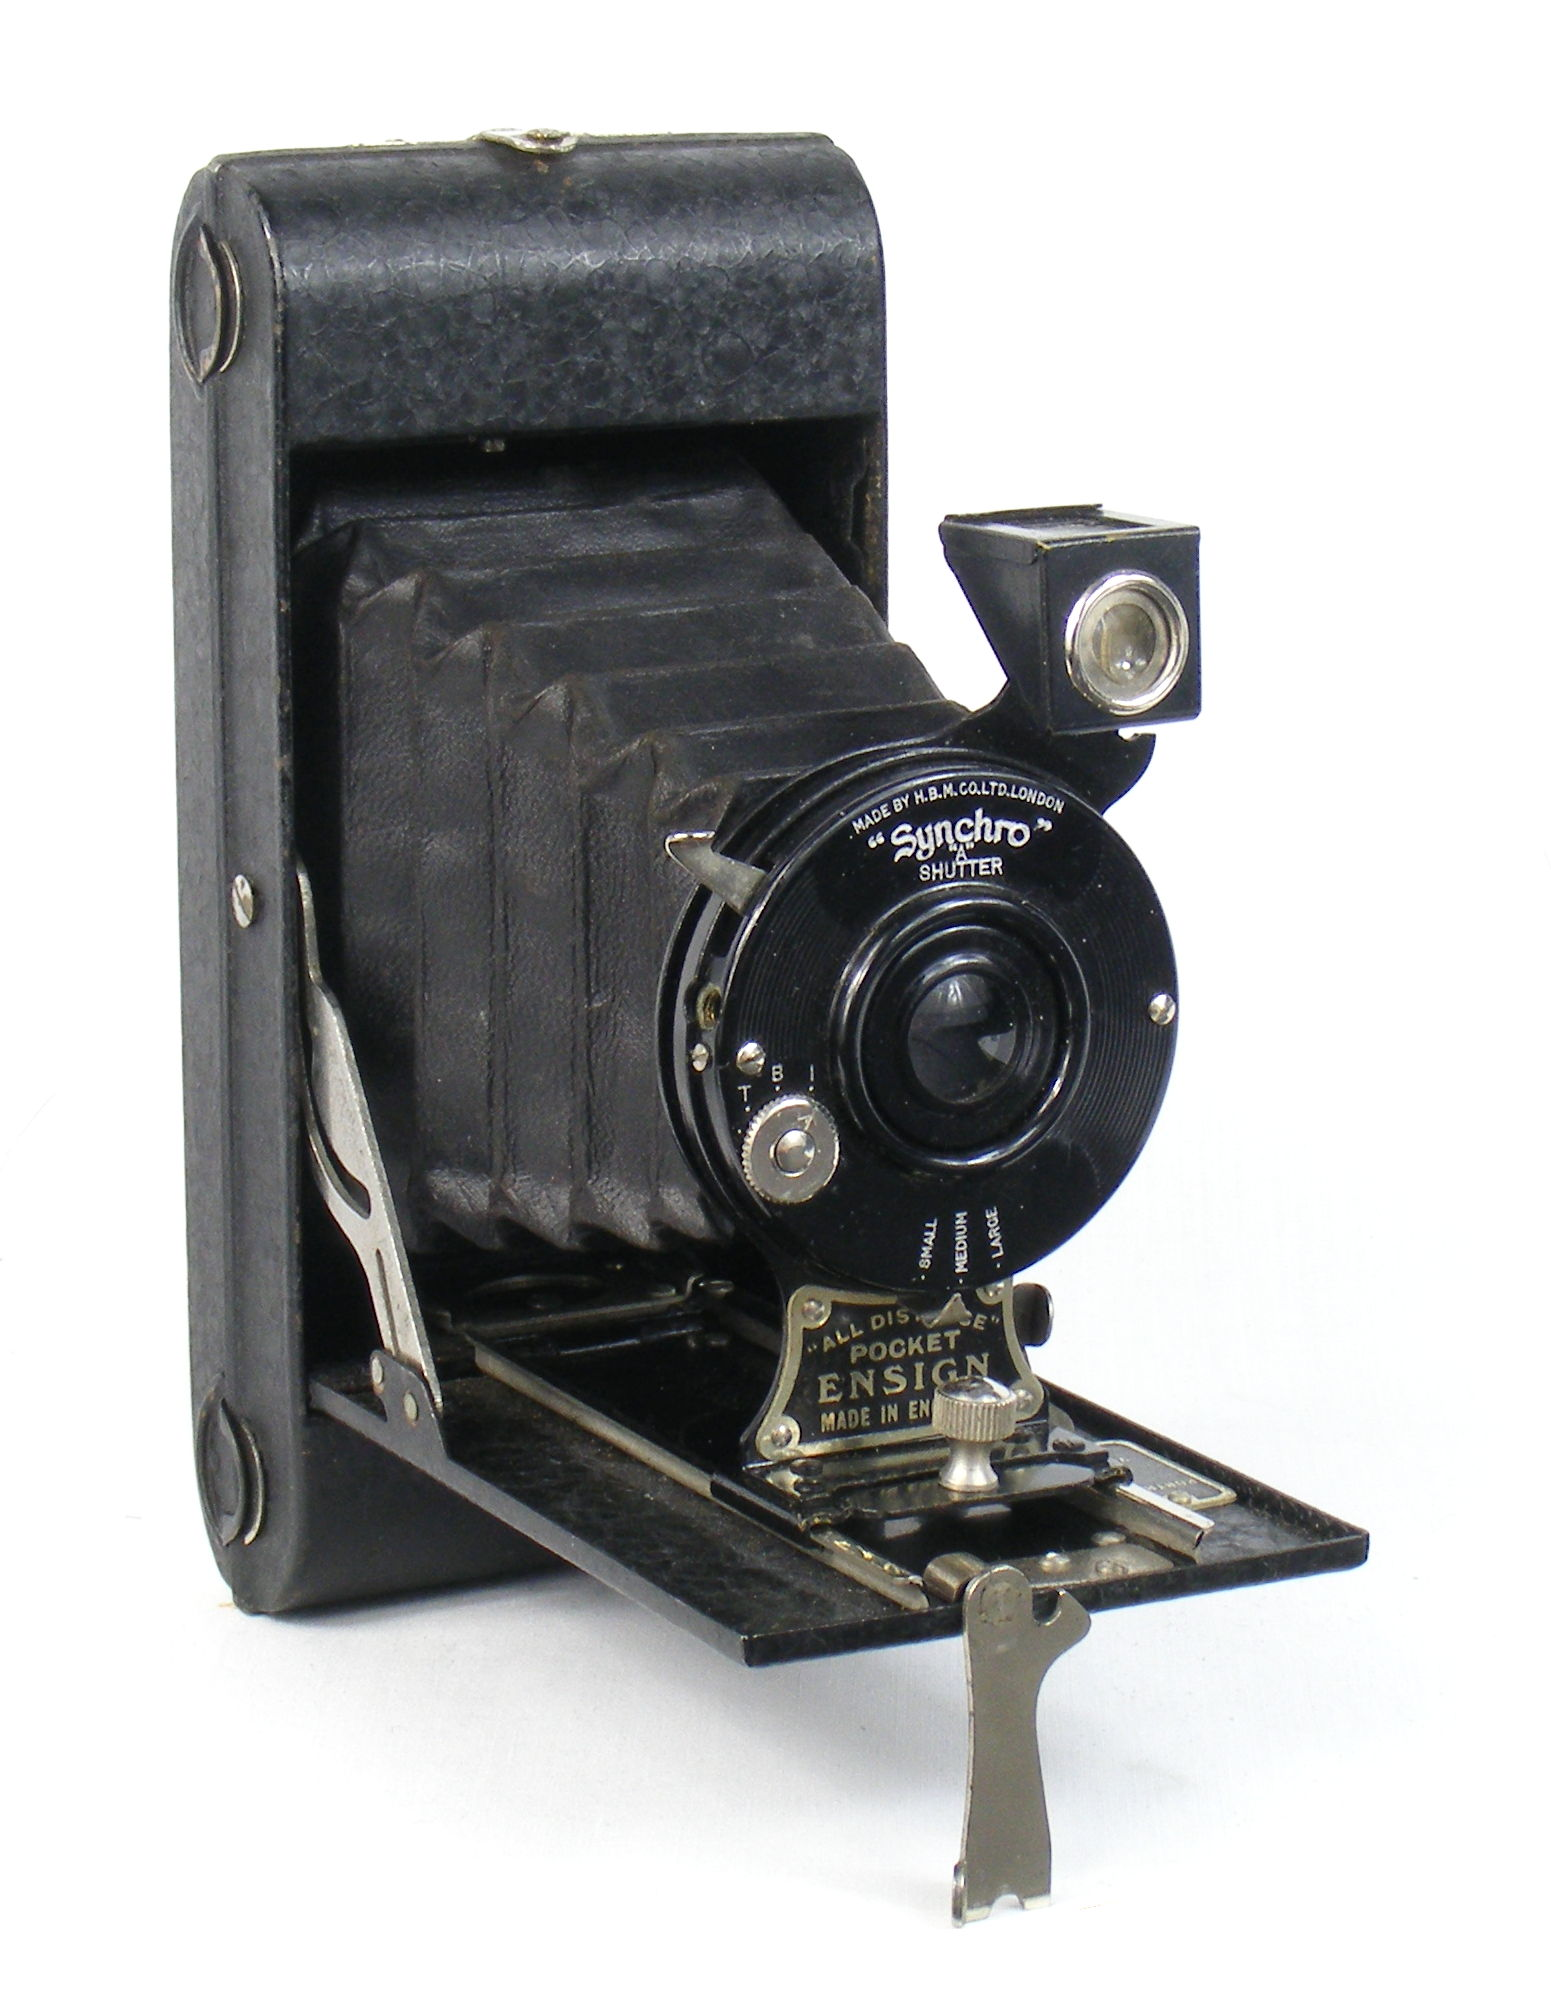 Image of All Distance Pocket Ensign Folding Camera (early model)